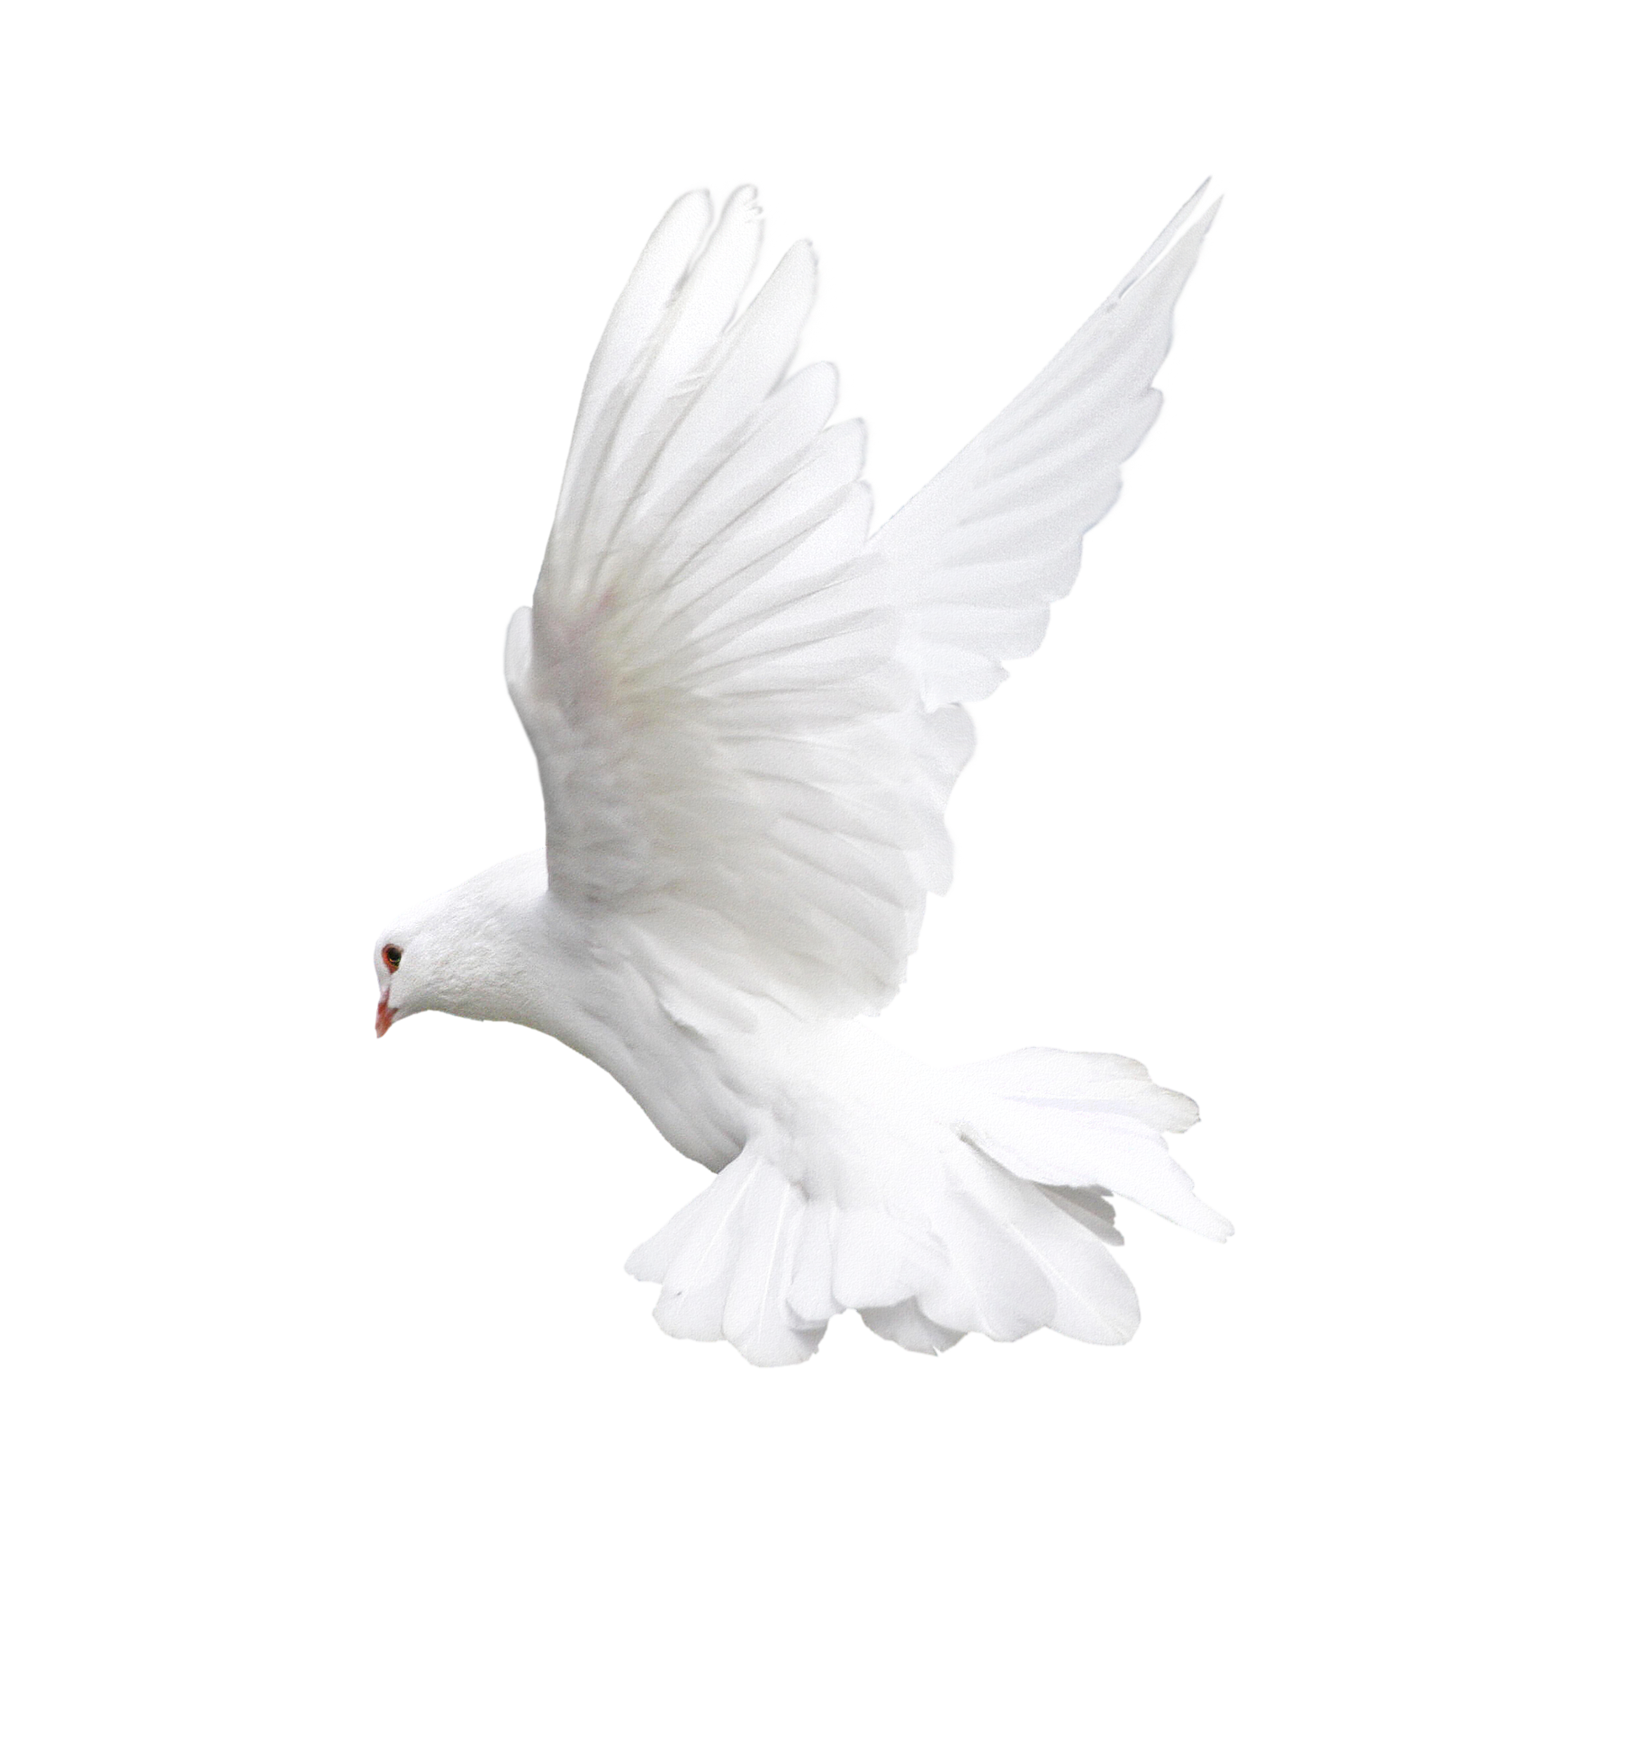 White dove one isolated. Doves clipart freedom